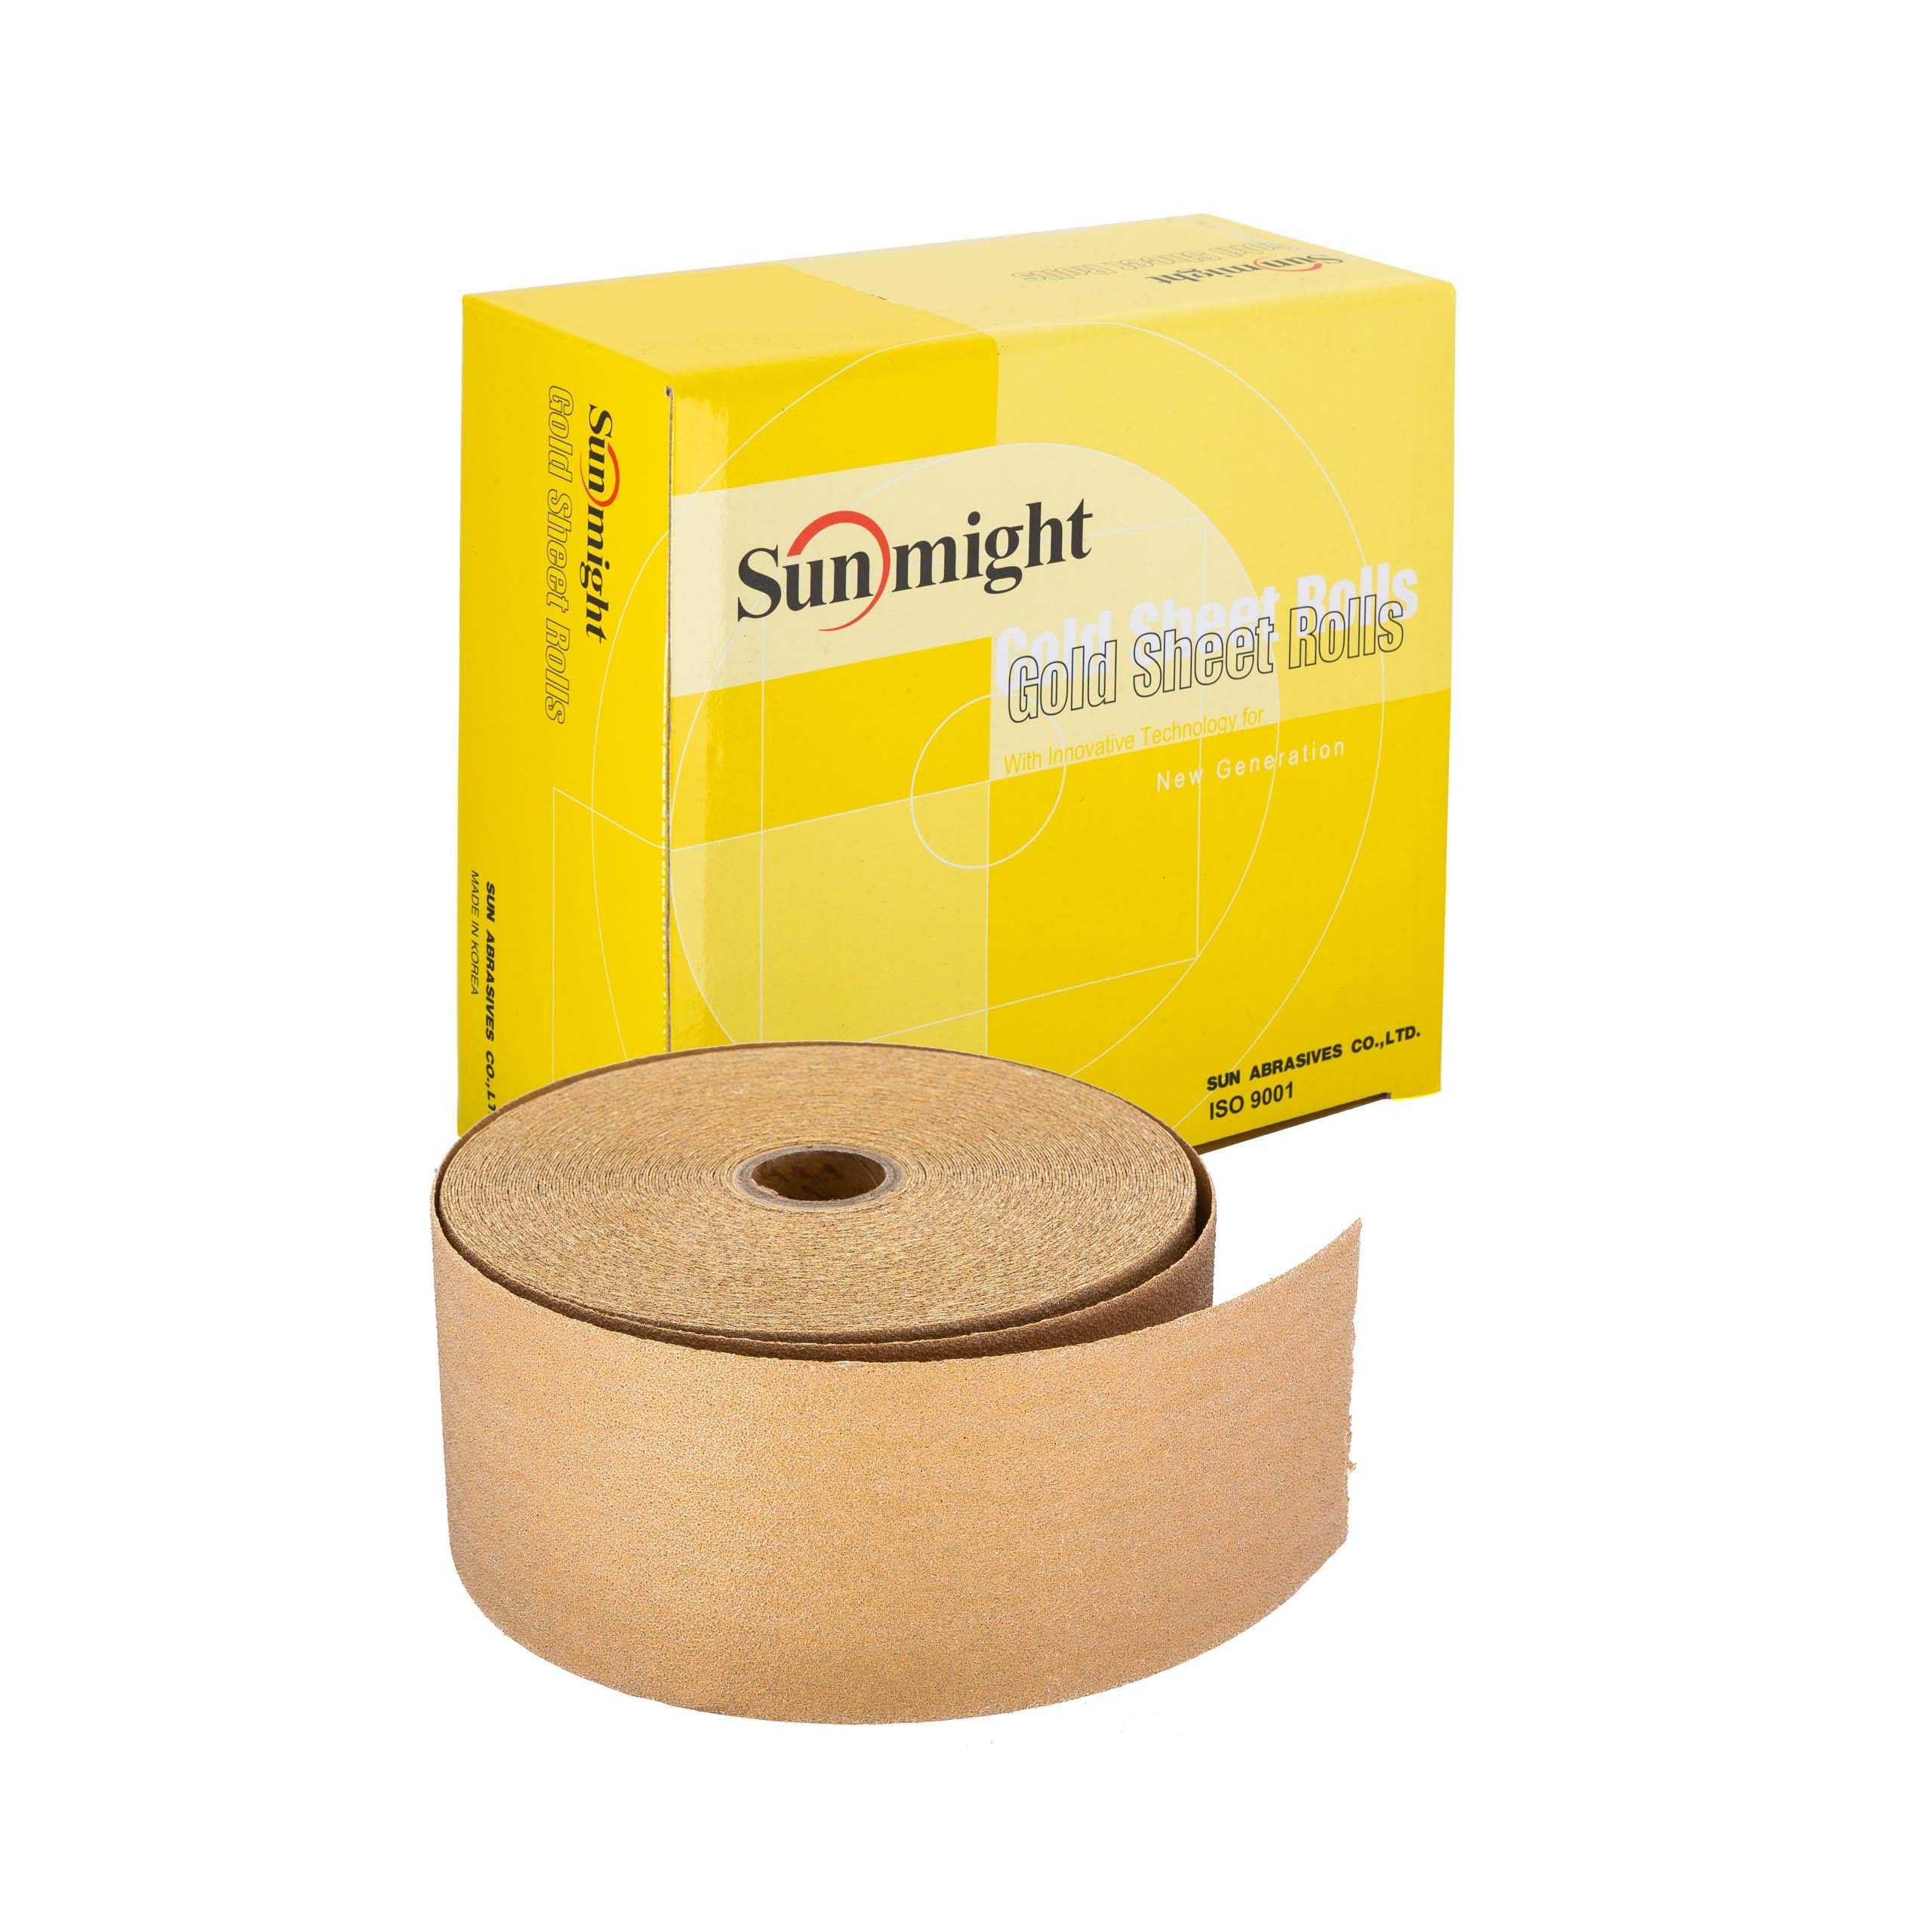 Sunmight 06116 1 Pack 2-3/4'' X 45 yd PSA Sheet Roll (Gold Grit 400) by Sunmight